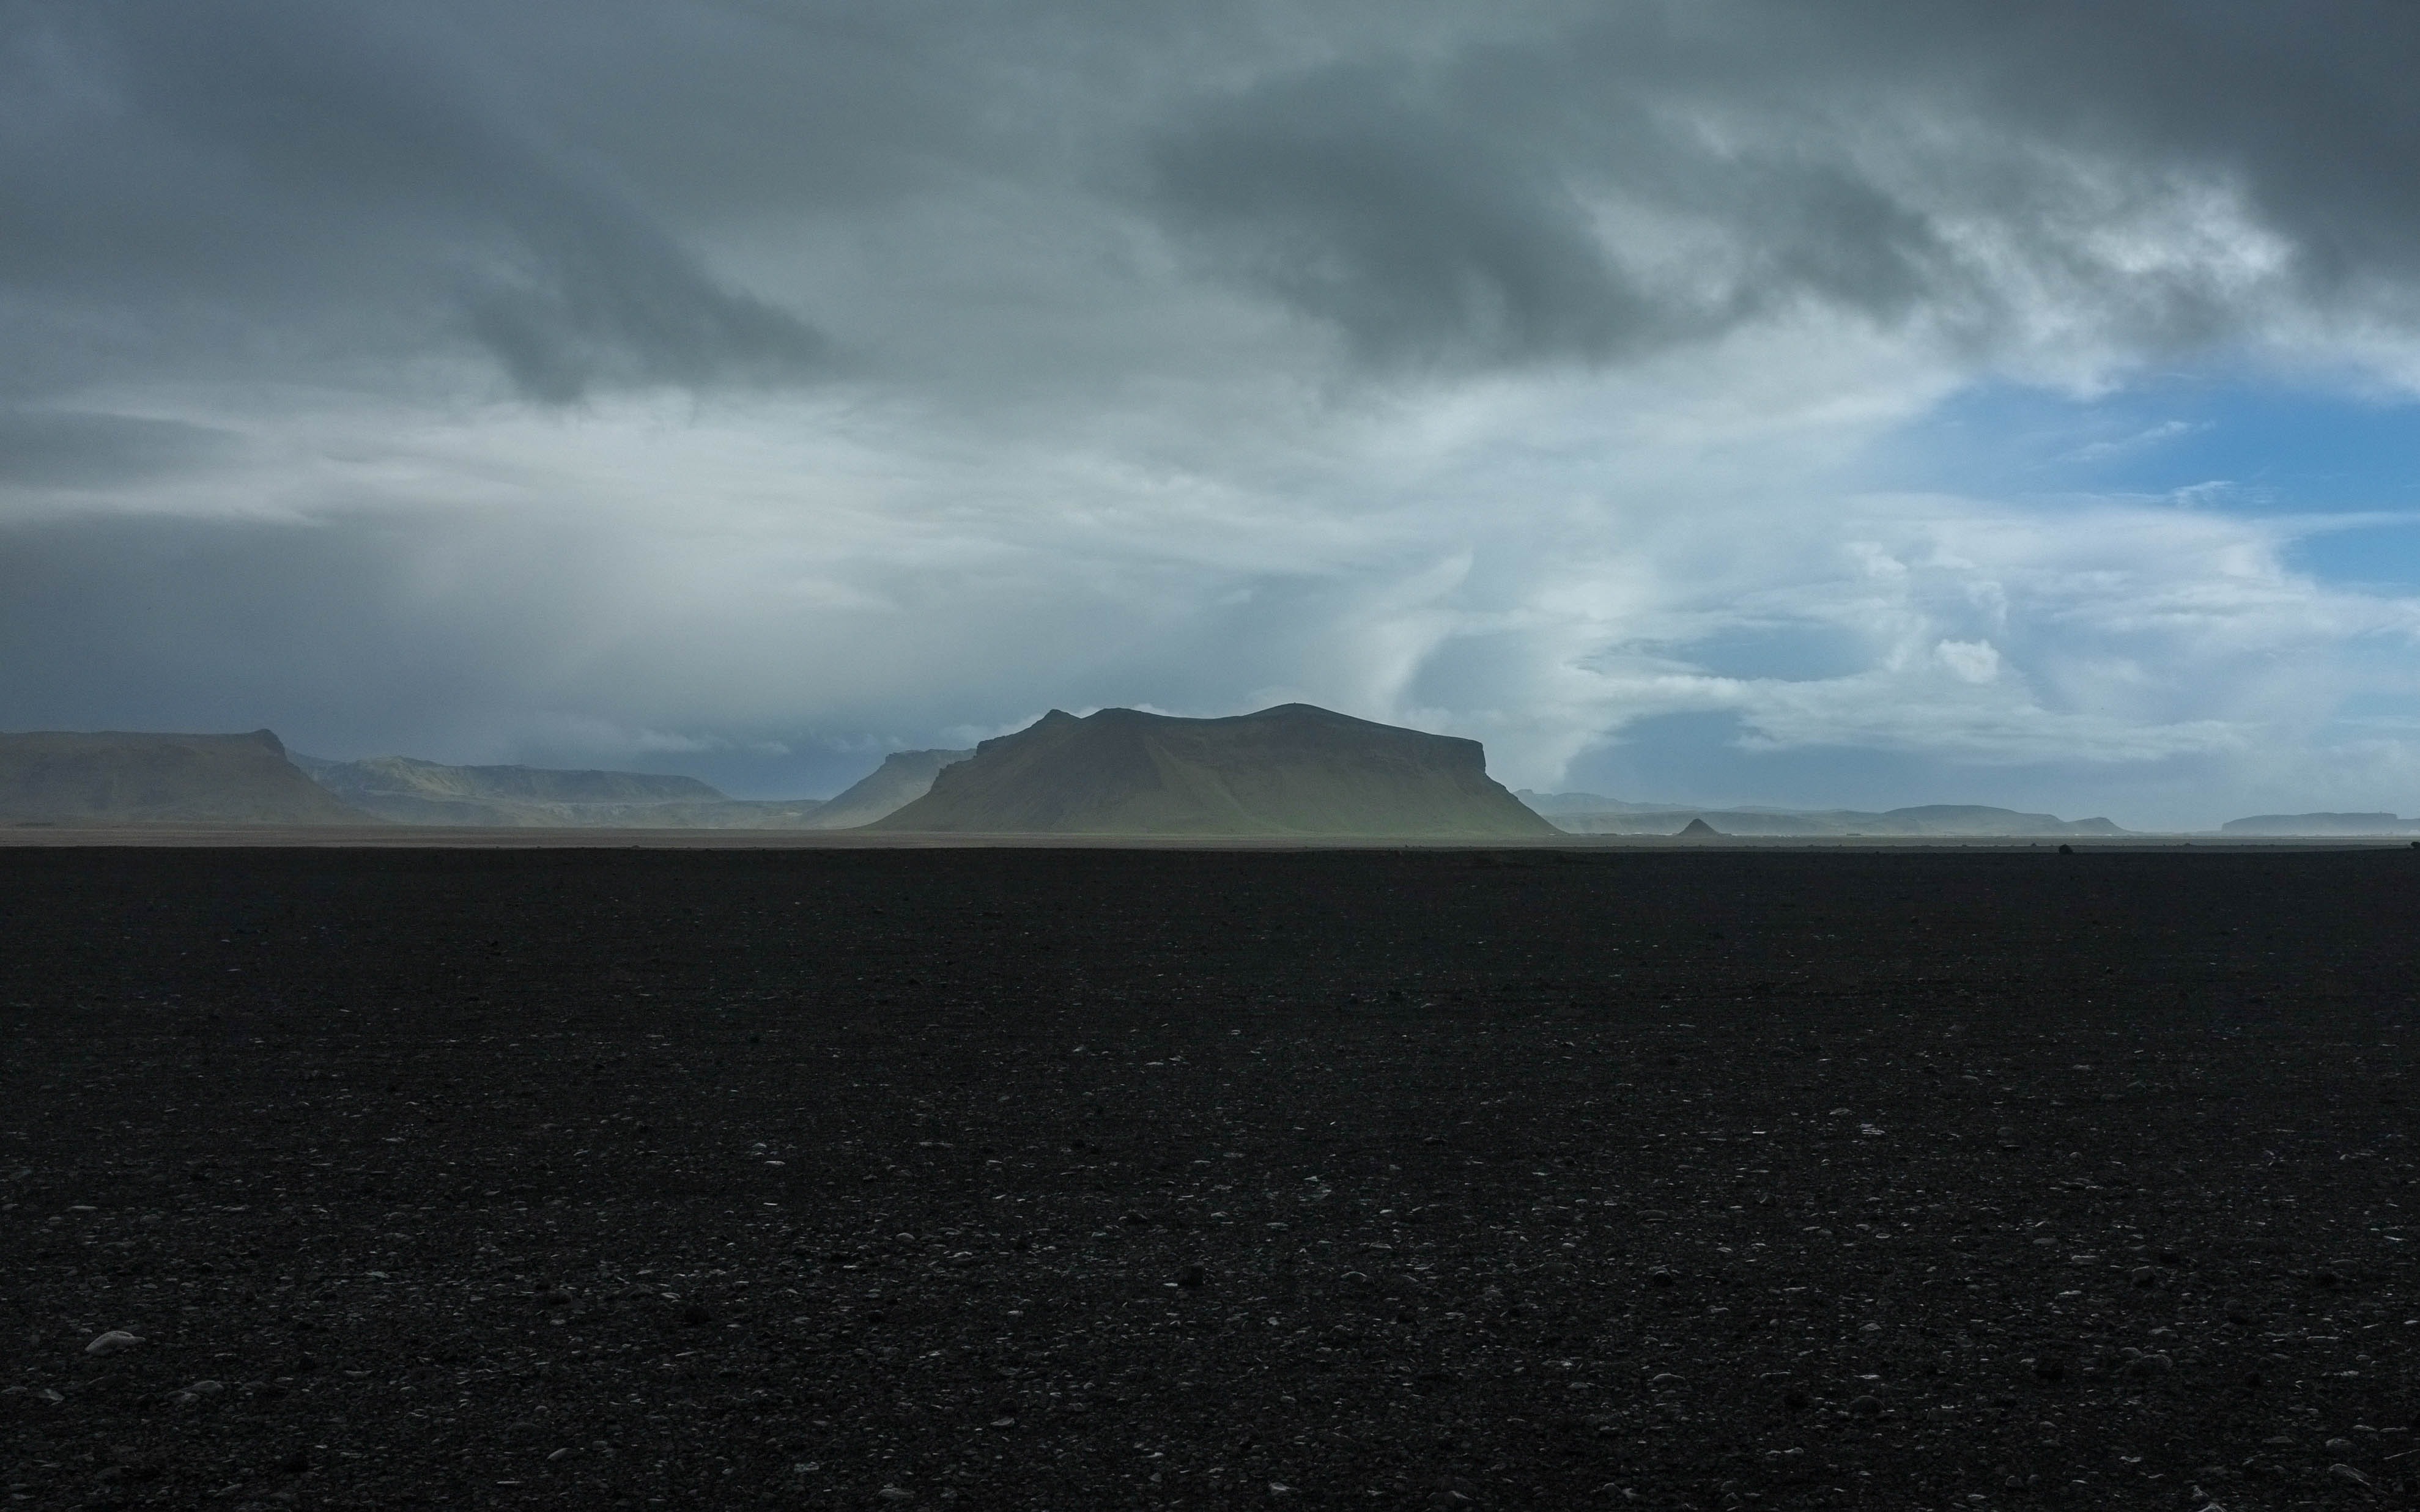 A rocky plain with flat mountains on the horizon on a cloudy day